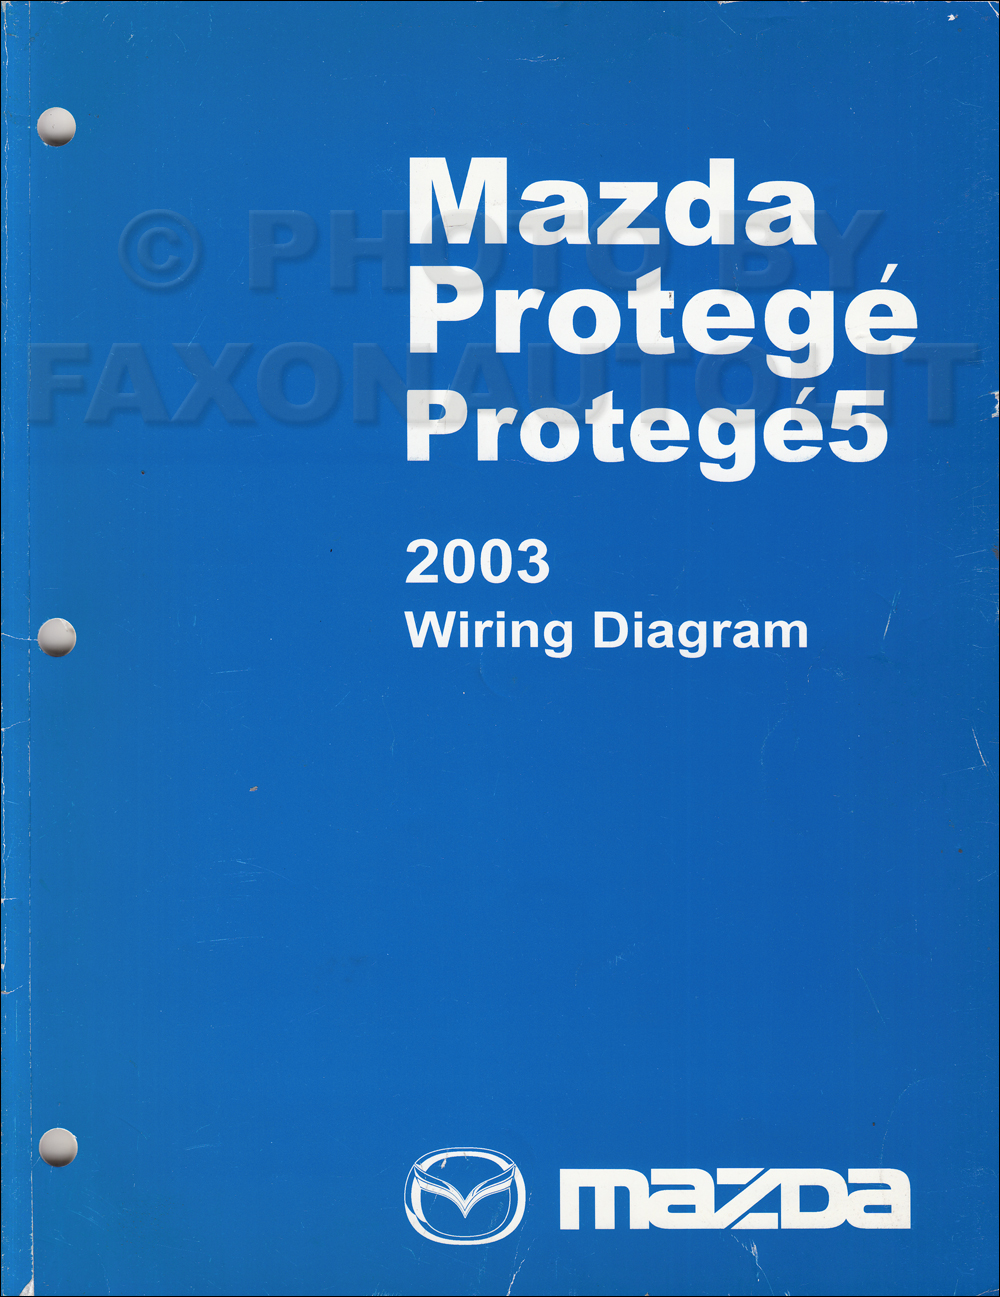 2003 mazda protege and protege5 wiring diagram manual original rh  faxonautoliterature com 02 Mazda Protege MPG 2002 mazda protege 5 wiring  diagram